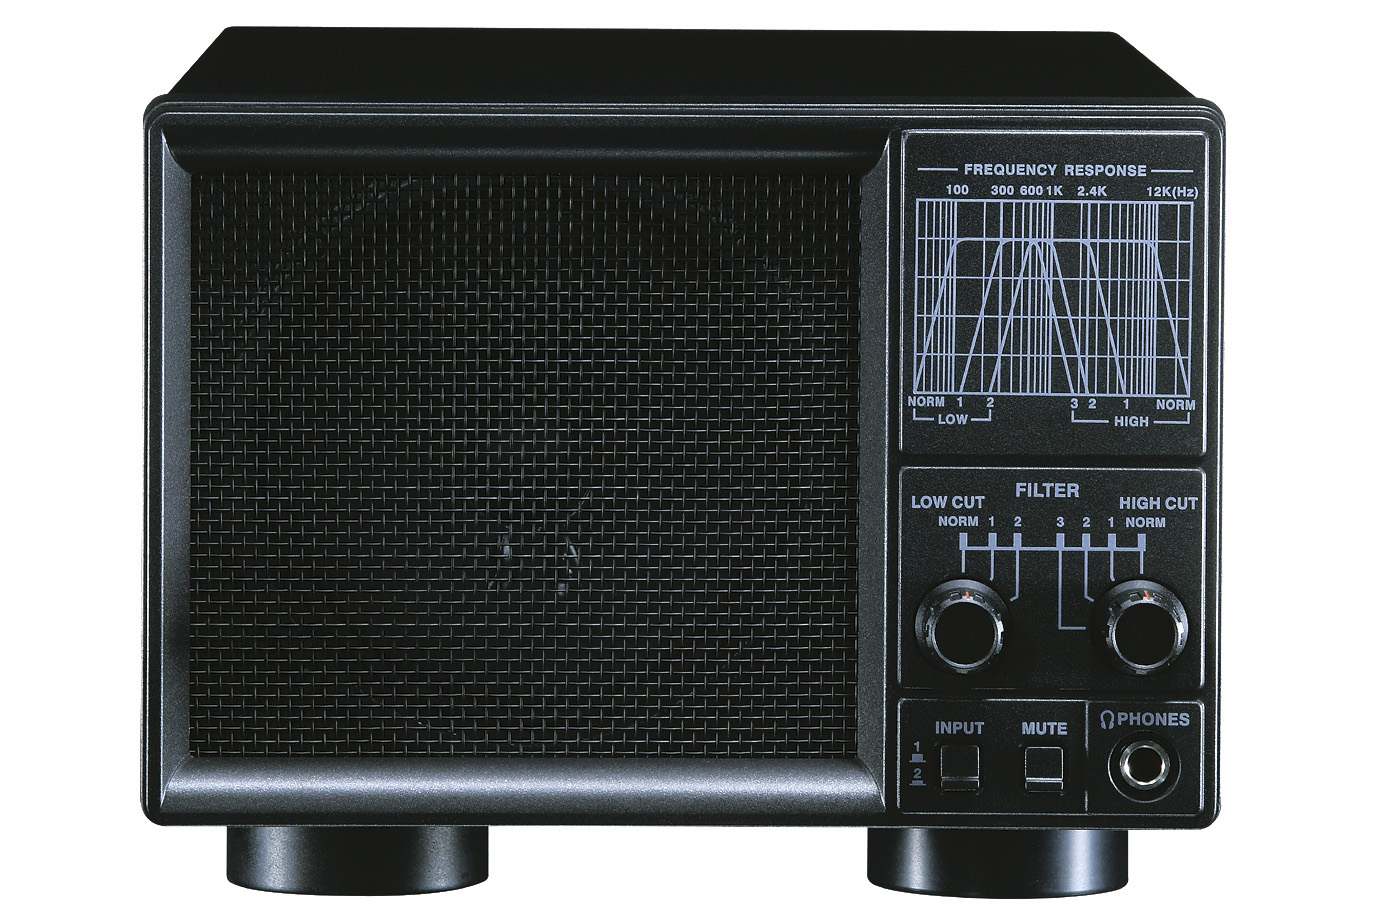 Yaesu SP-2000 - speaker to match the FT-2000 series.